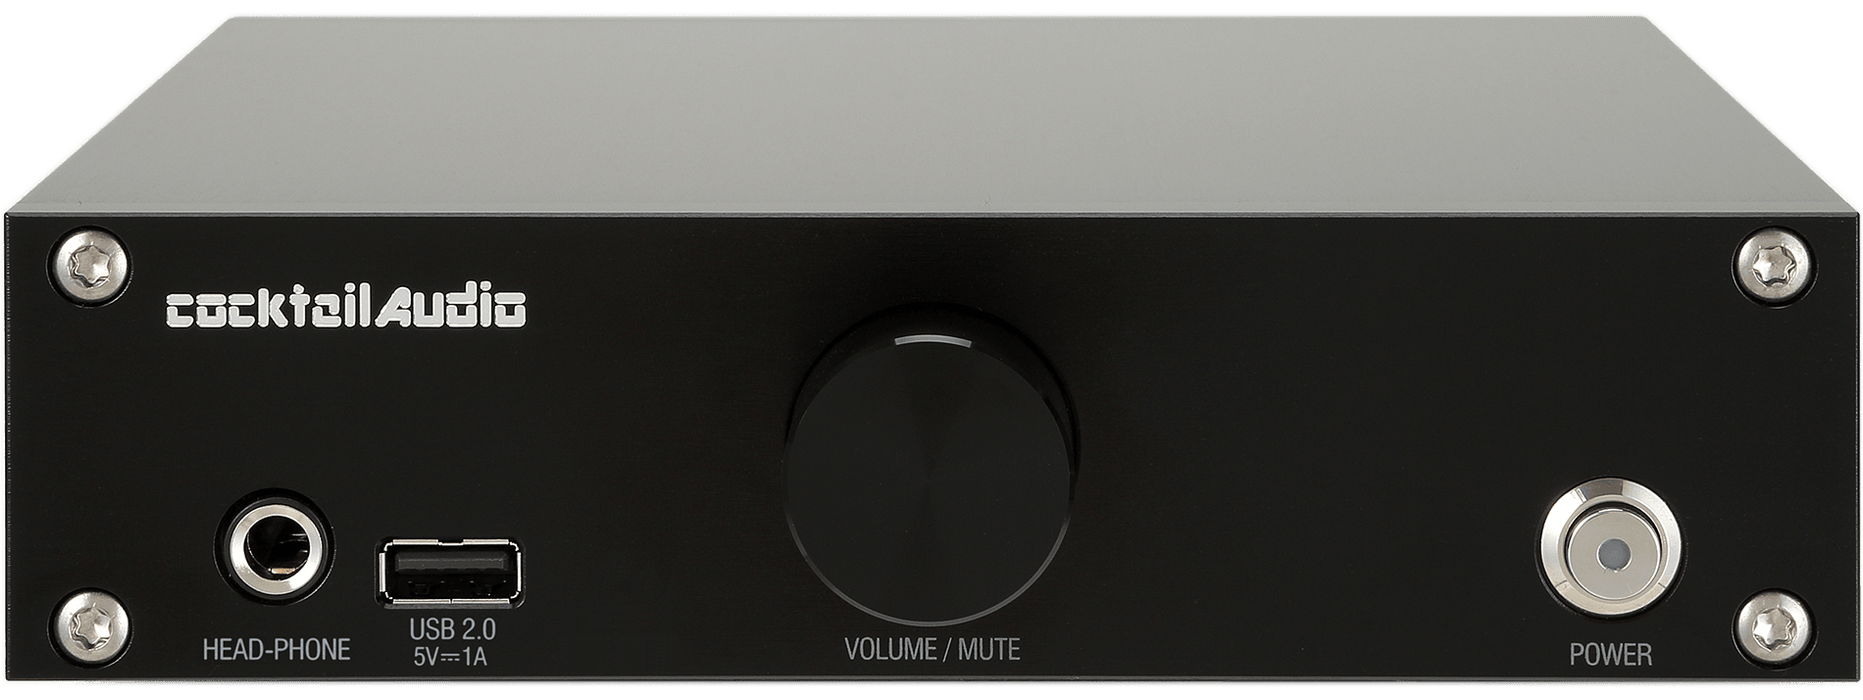 Cocktail Audio N15 D - Hi-Res Music Streamer DAC - The Audio Company